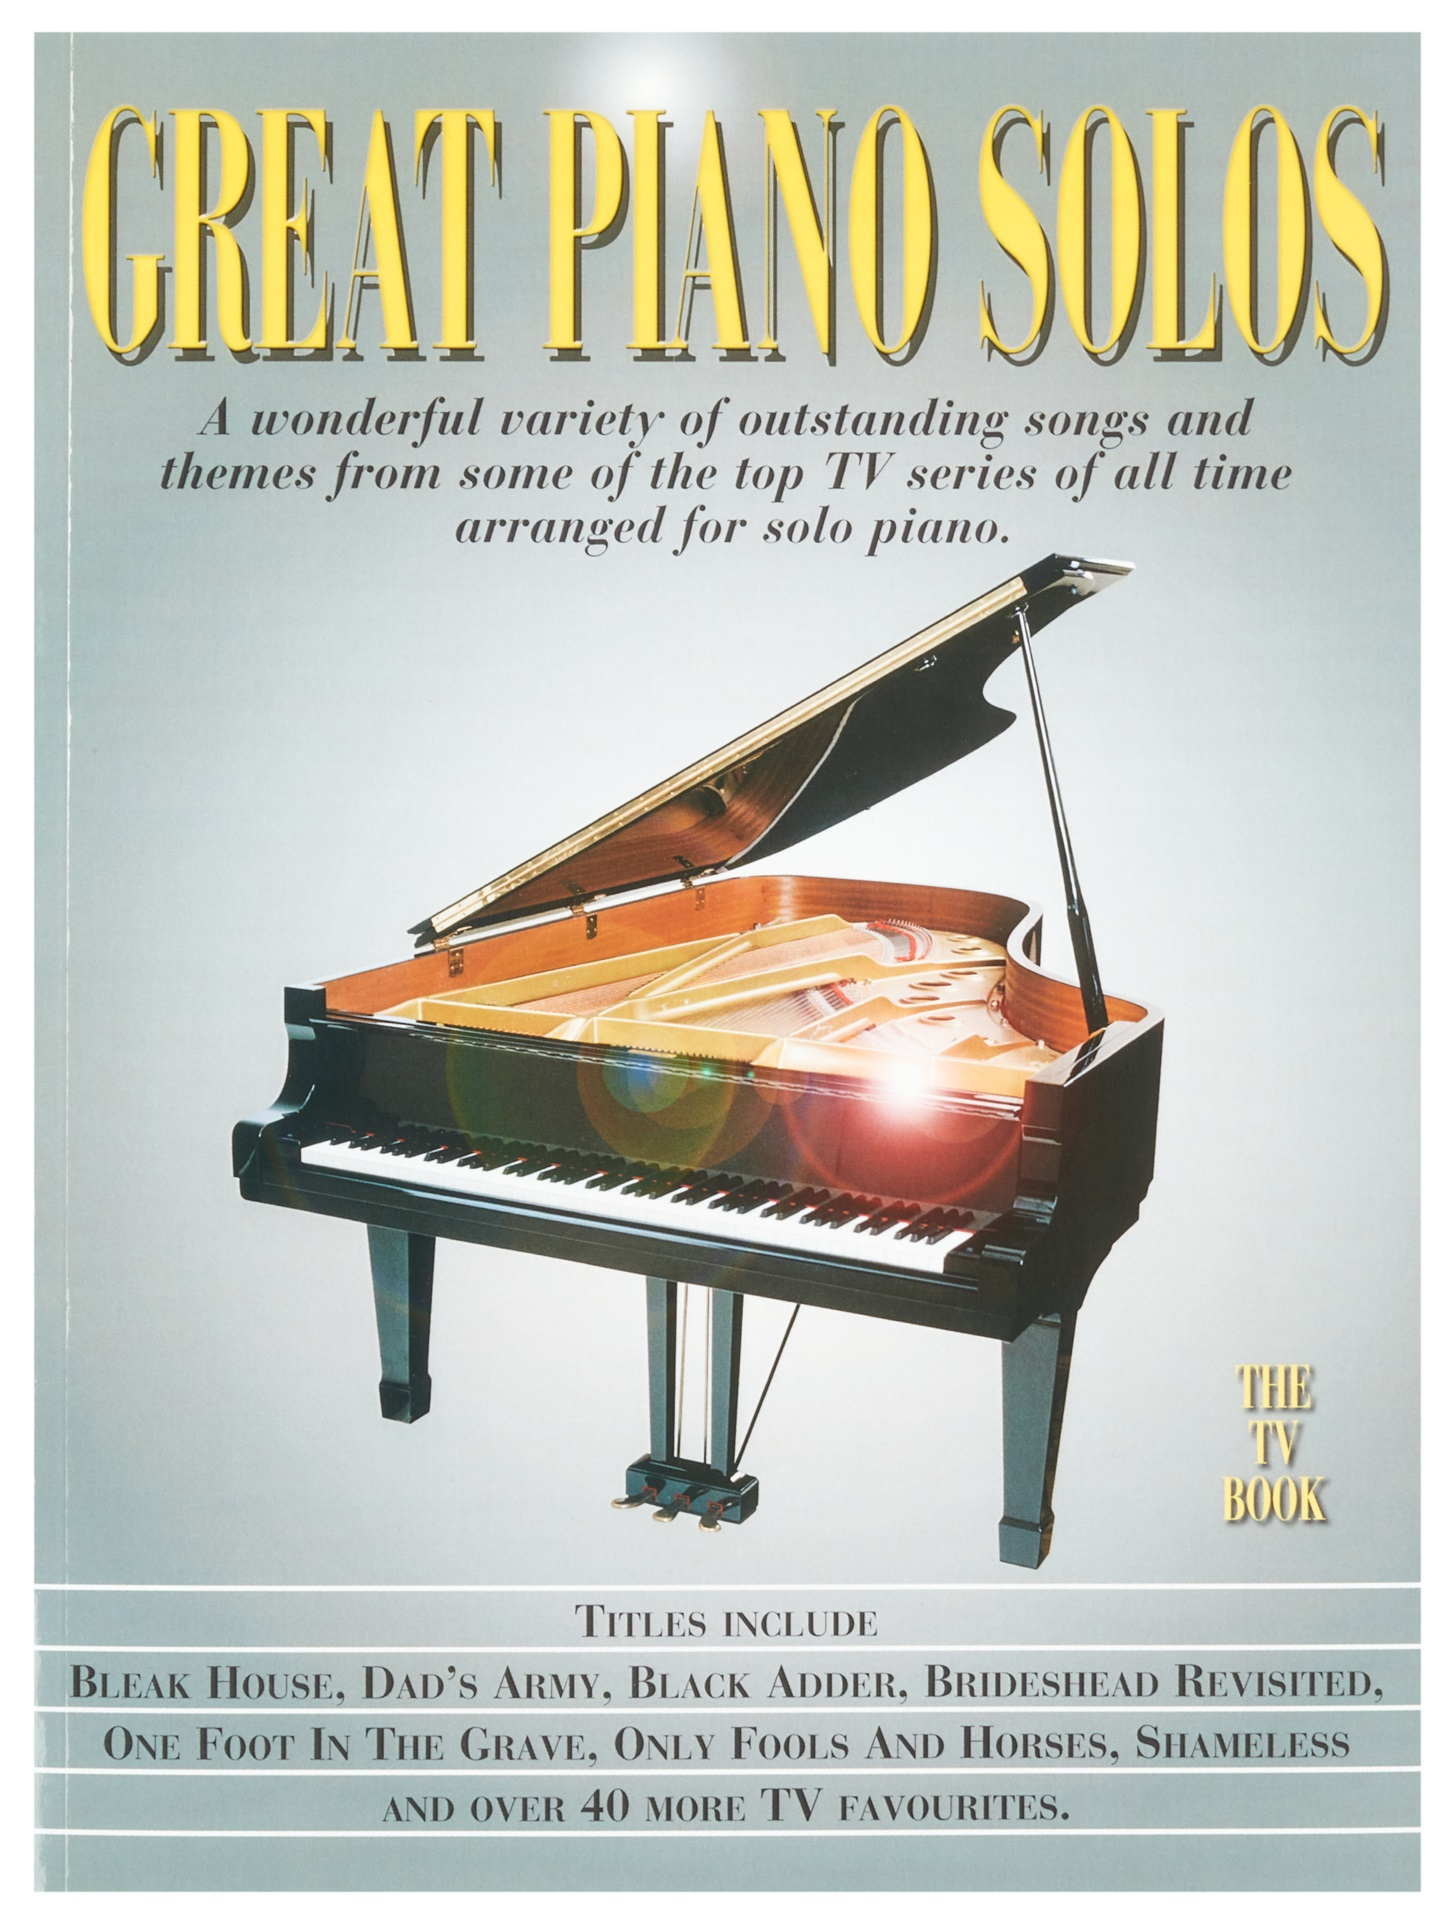 MS Great Piano Solos - The TV Book